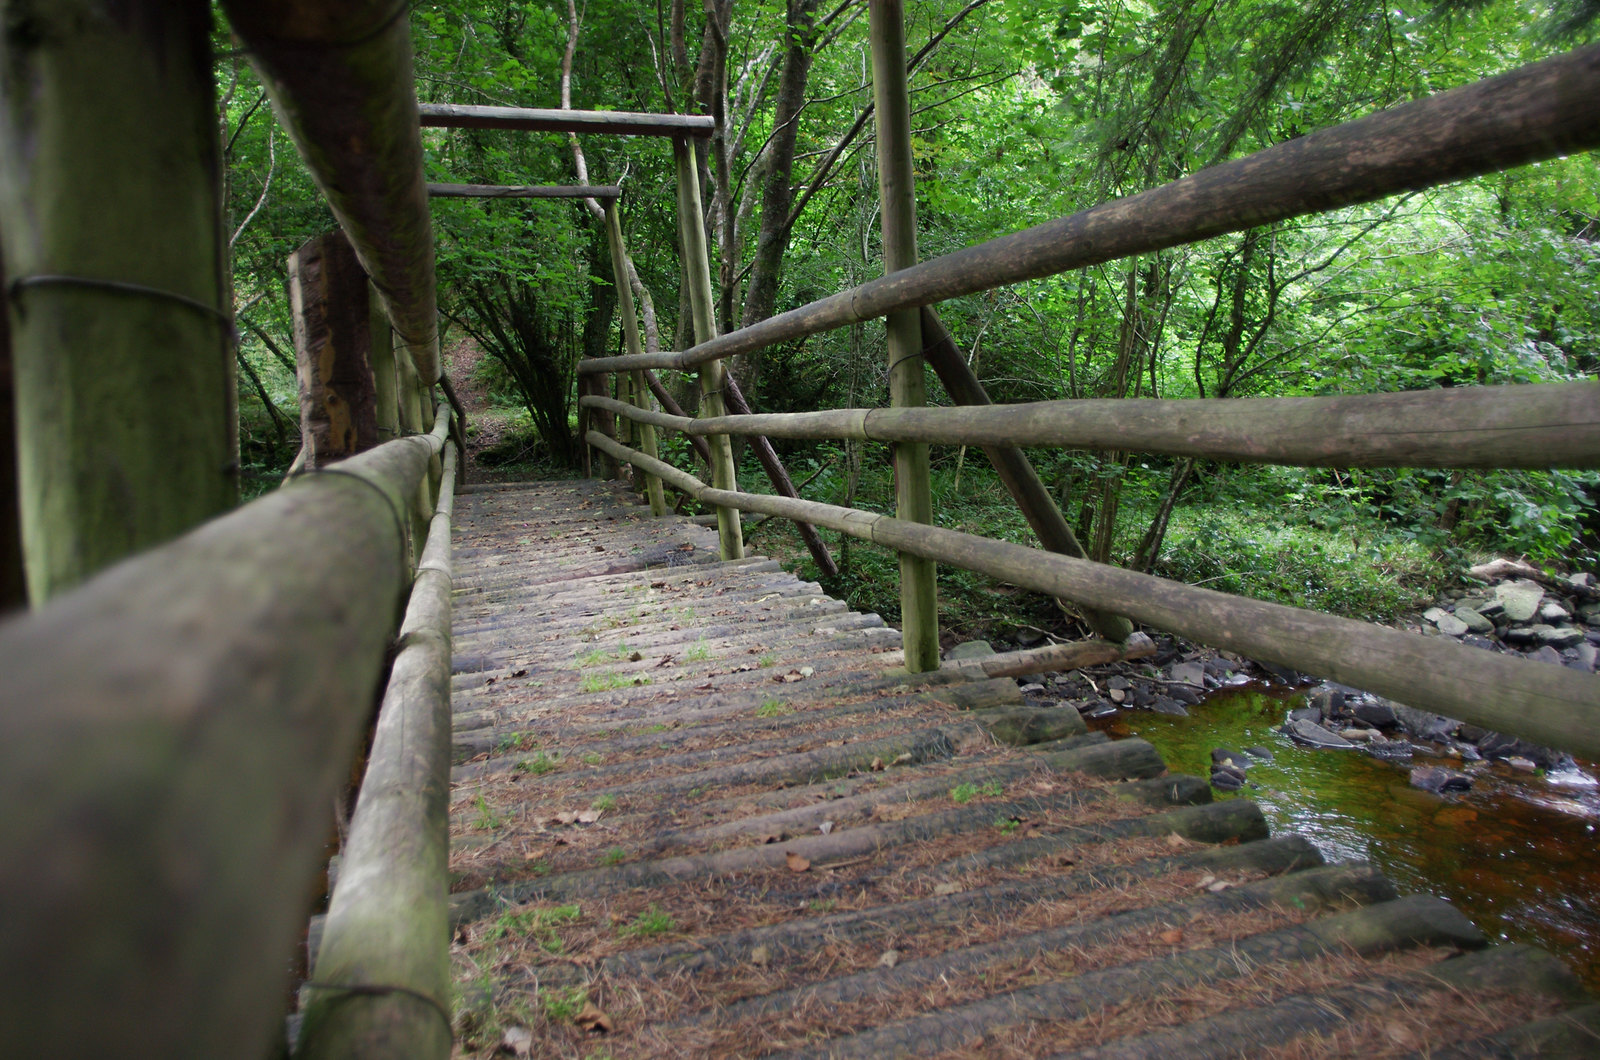 Slieve bloom mountains - the wooden bridge